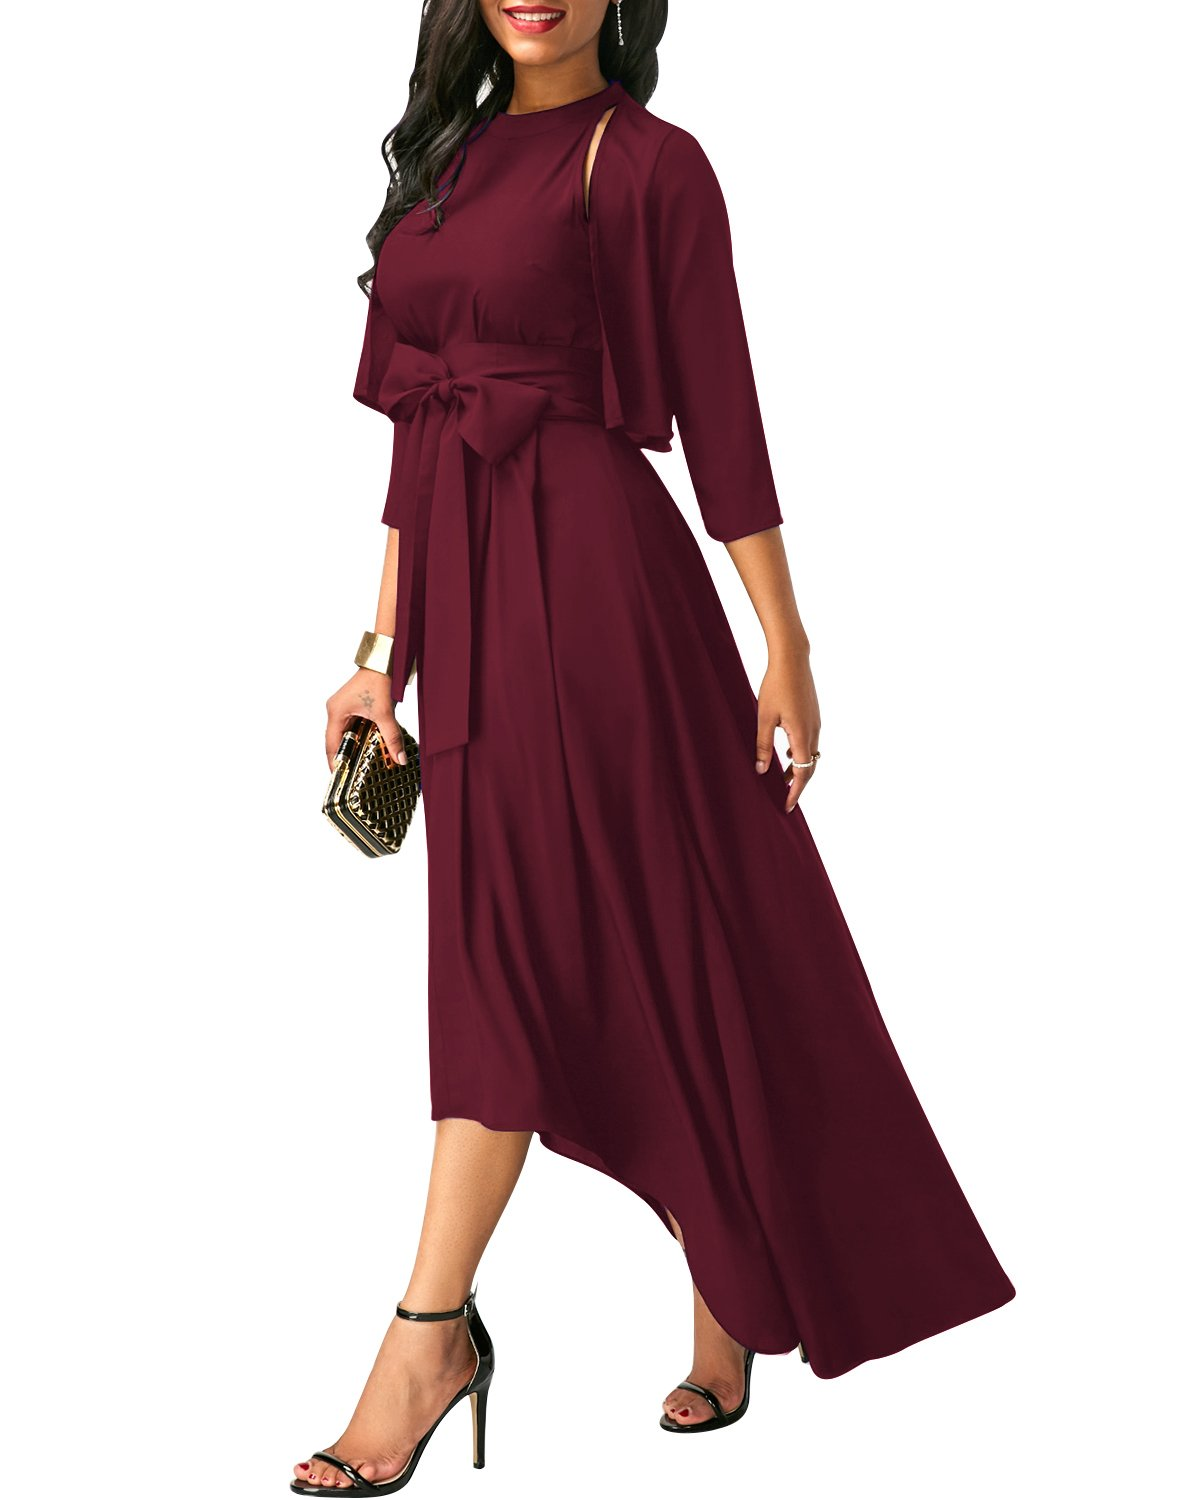 VIUVIU Dresses Women,Casual 3/4 Sleeve Maxi Dresses Party Wedding Belt Wine red XL